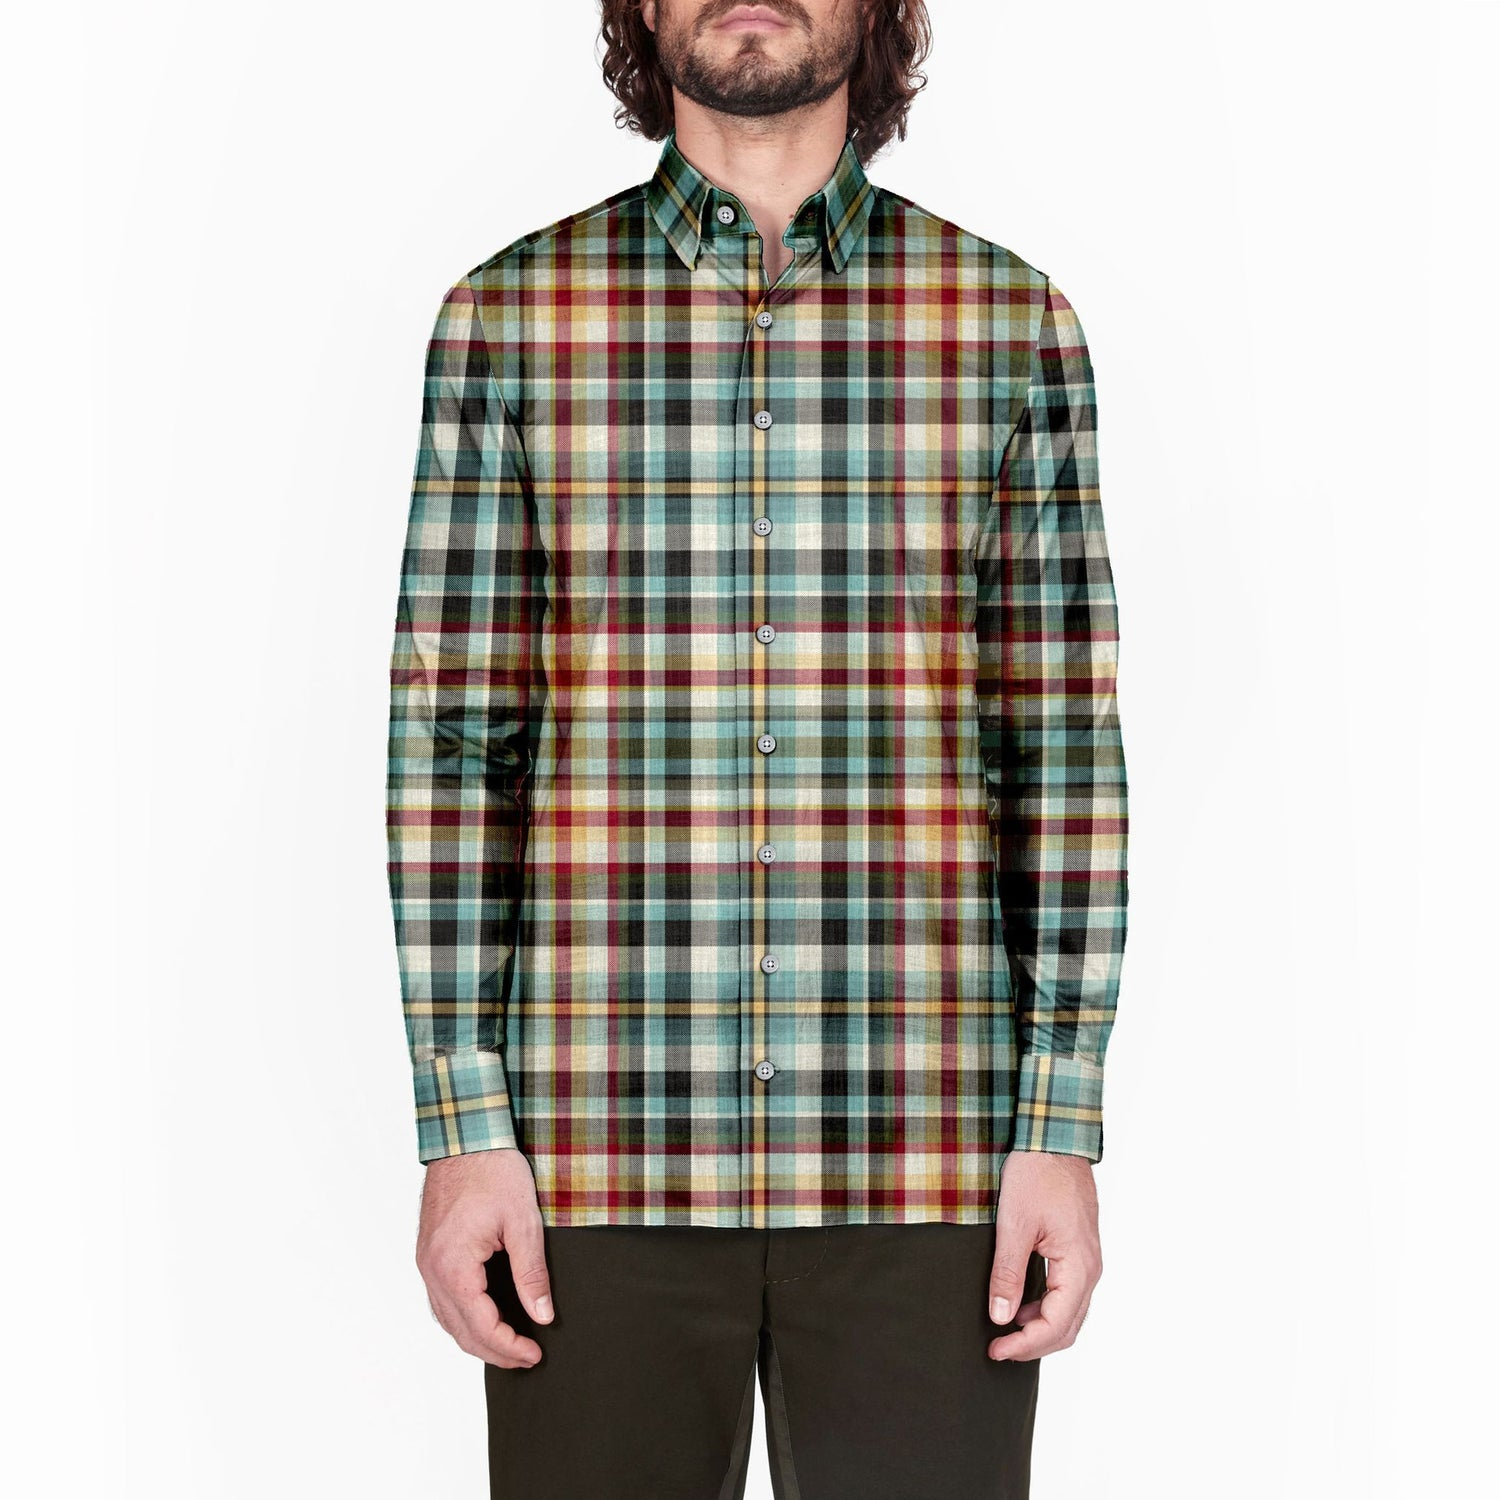 The Cloisters 52 Card Deck Plaid Long Sleeve Shirt